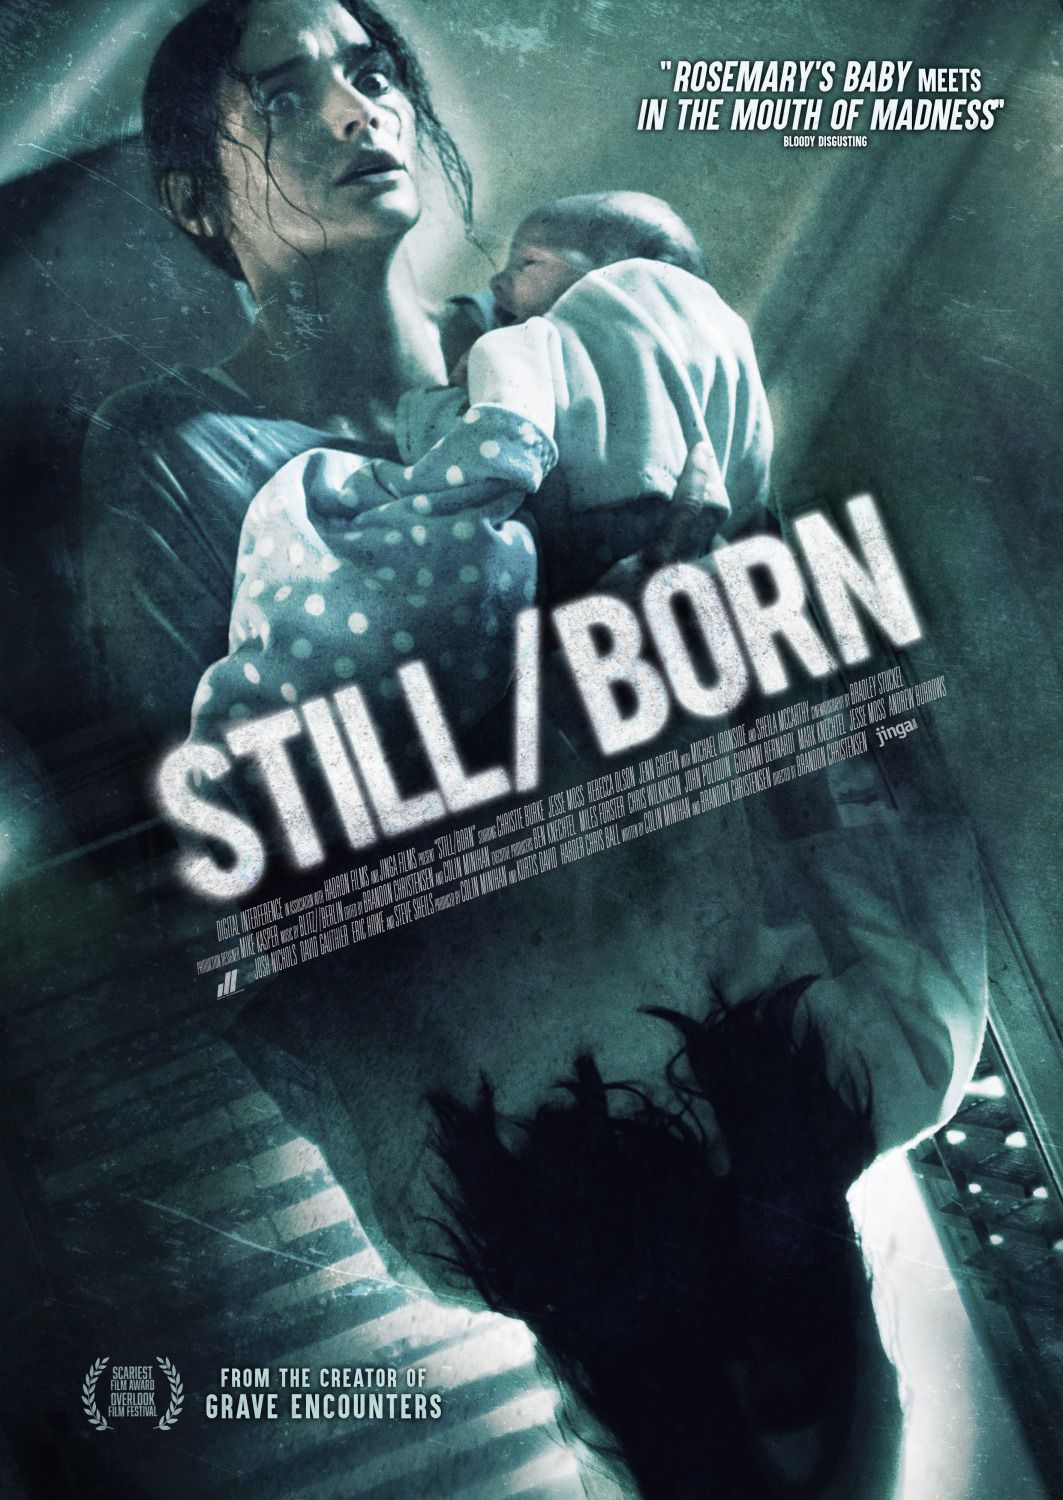 Stillborn - Horror Film poster - Christie Burke, Jesse Moss, Rebecca Olson, Jenn Griffin